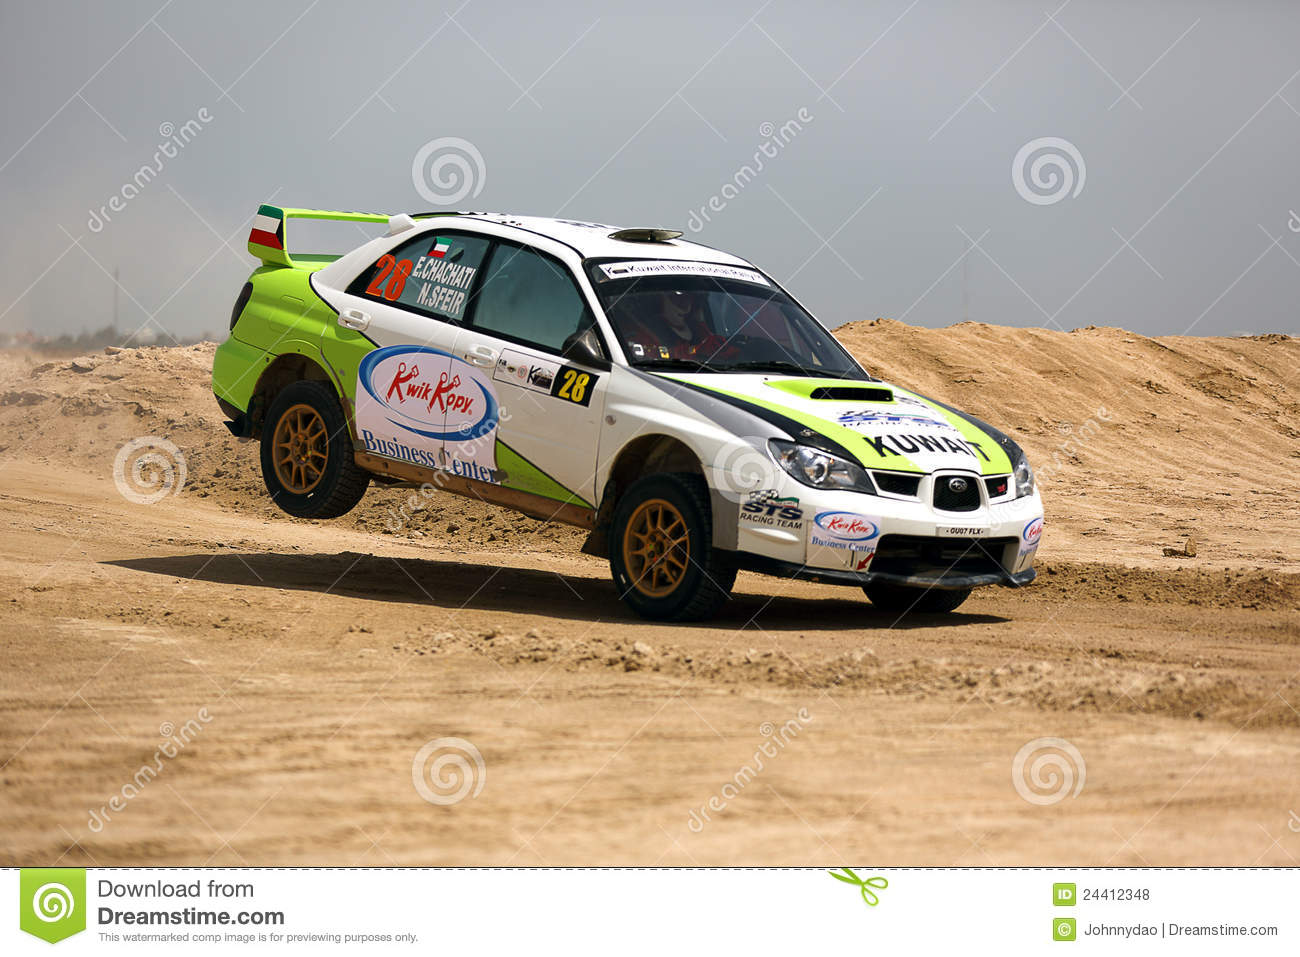 subaru-impreza-kuwait-international-rall